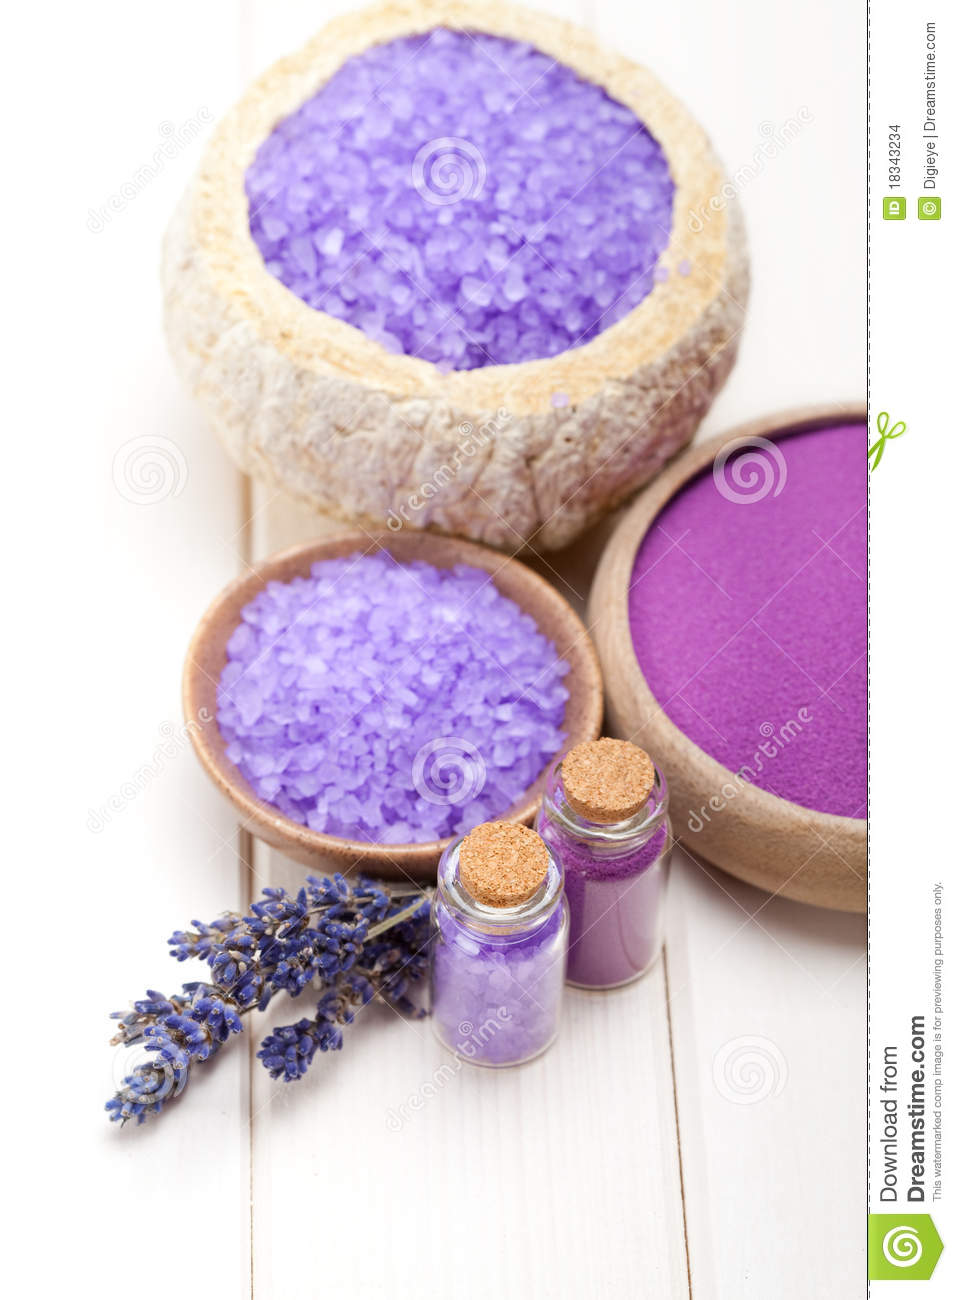 Spa Supplies - Massage Tools Stock Photo, Picture And Royalty Free ...